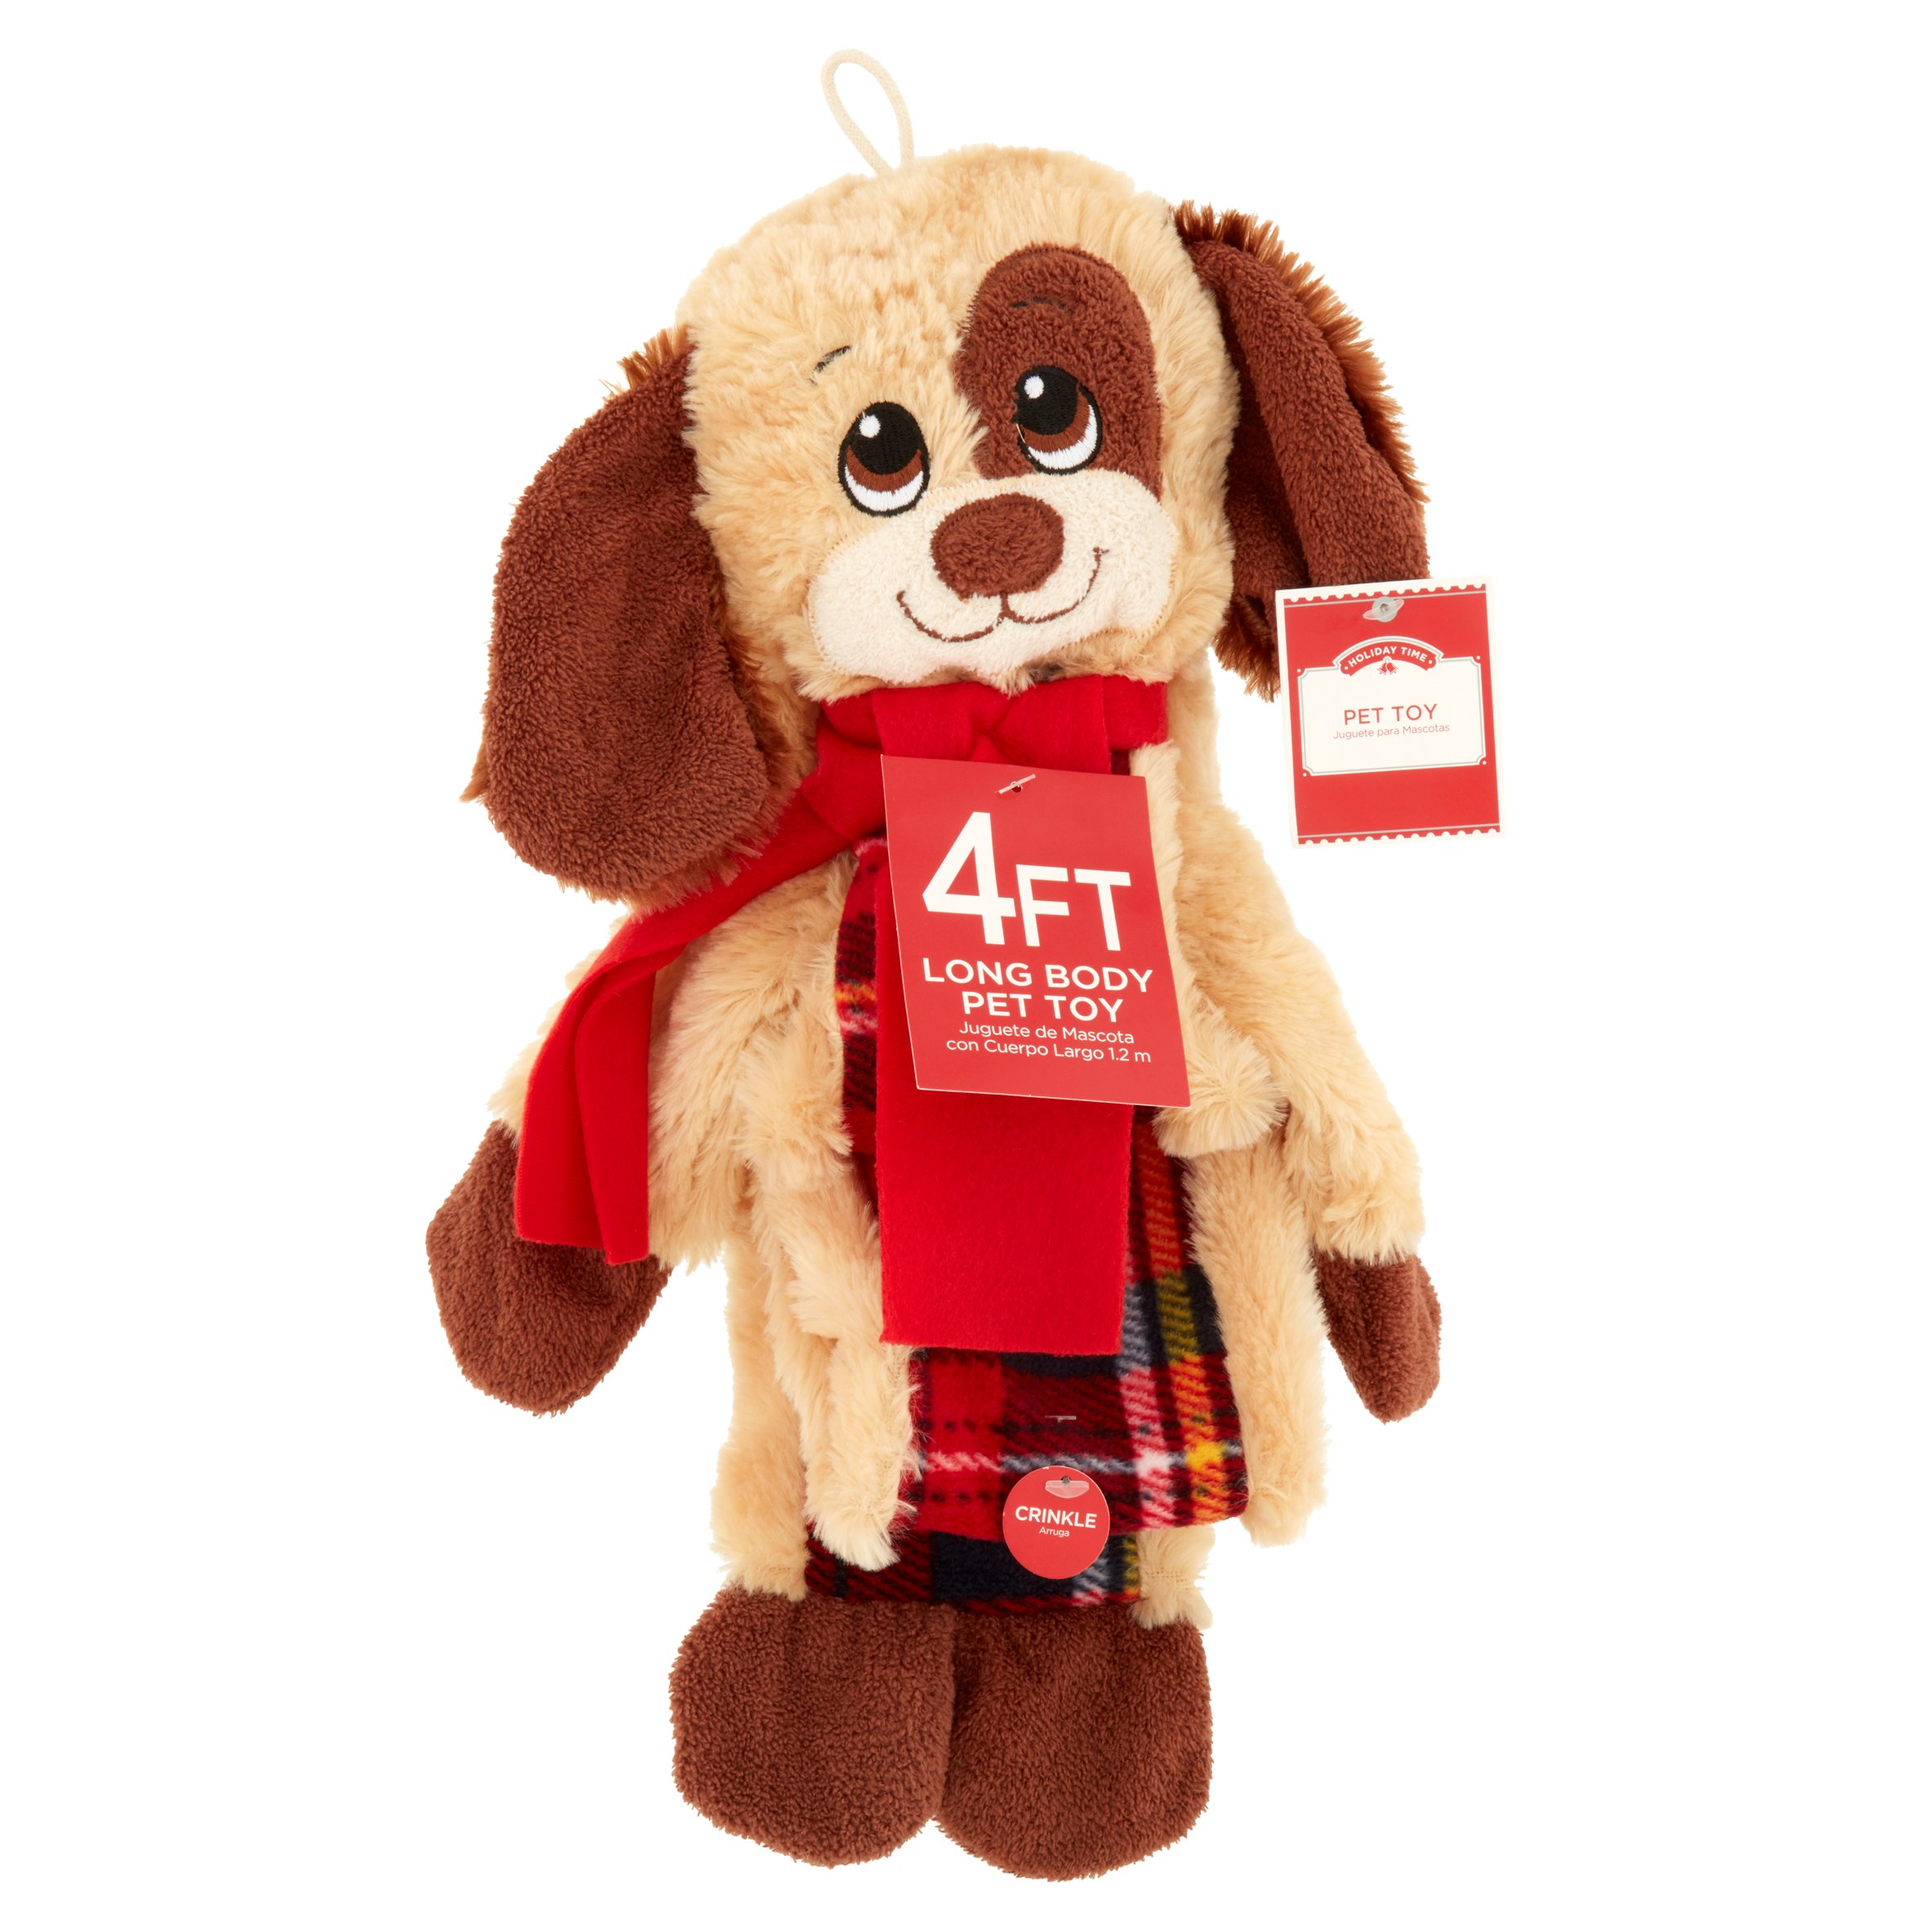 Holiday Time 4ft Long Body Hd Crinkly Puppy Pet Toy